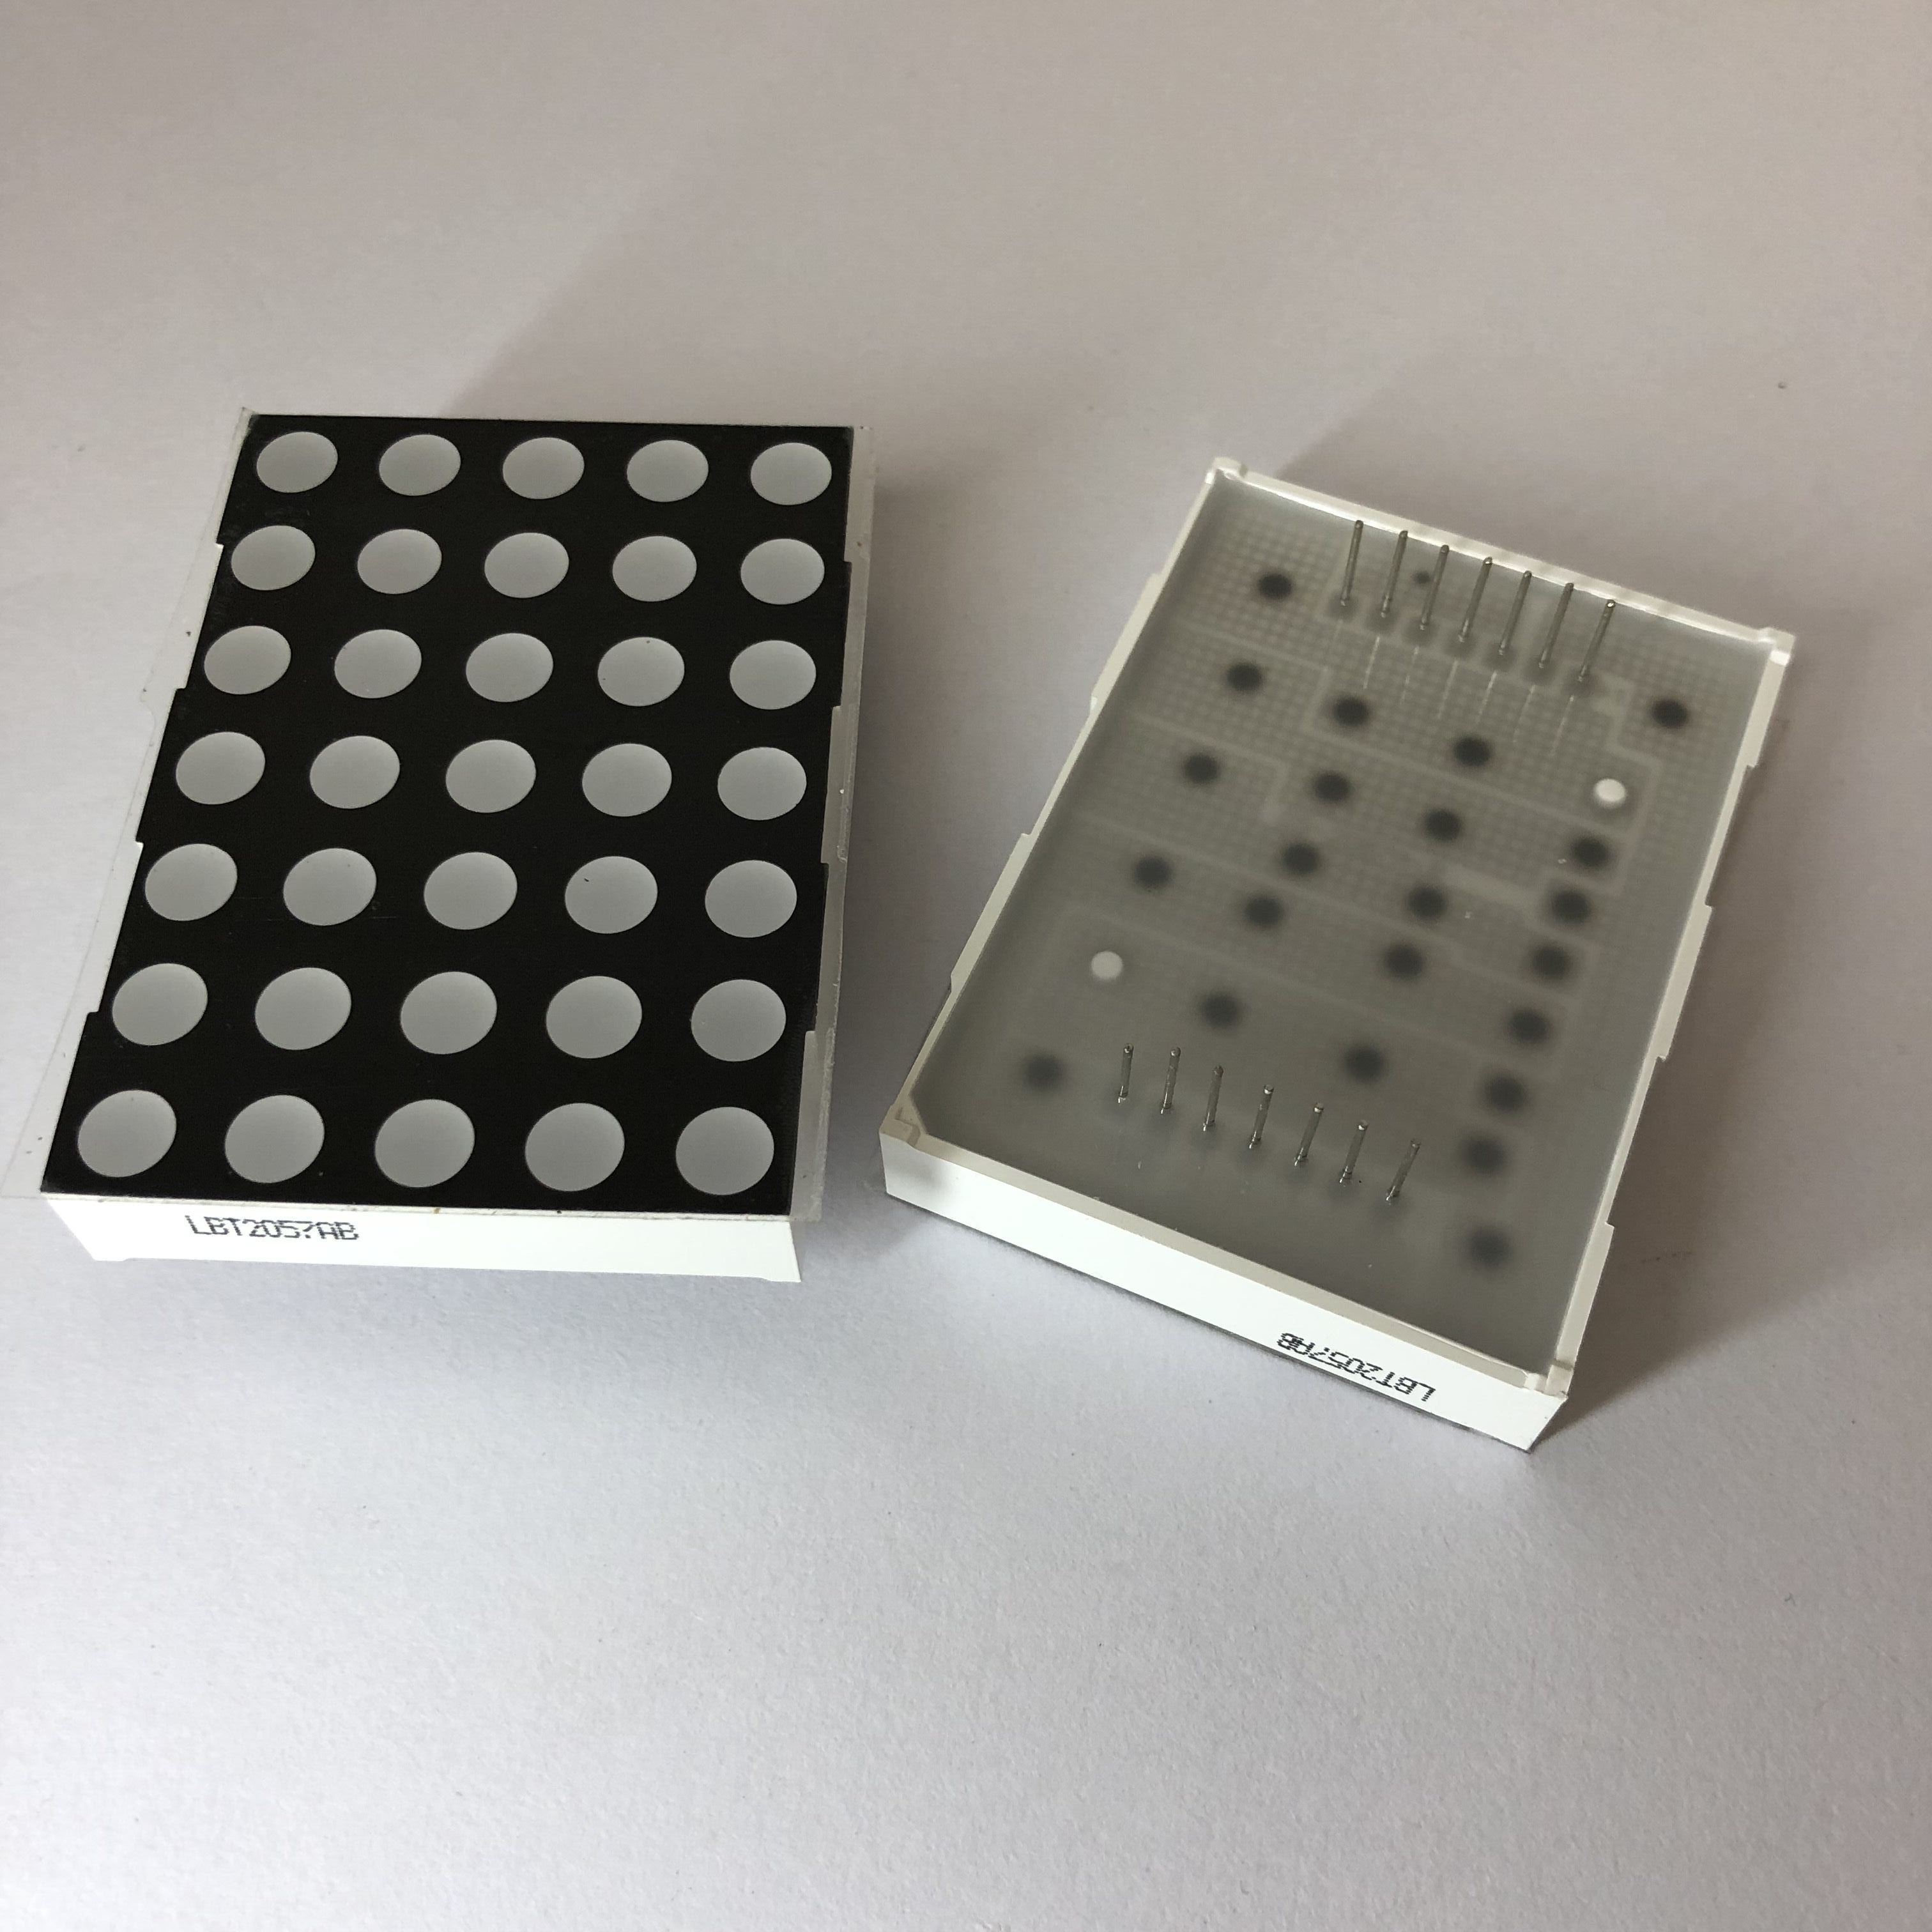 37.8*53.1mm 5x7 D2057 dot matrix led 5.0mm dot diameter